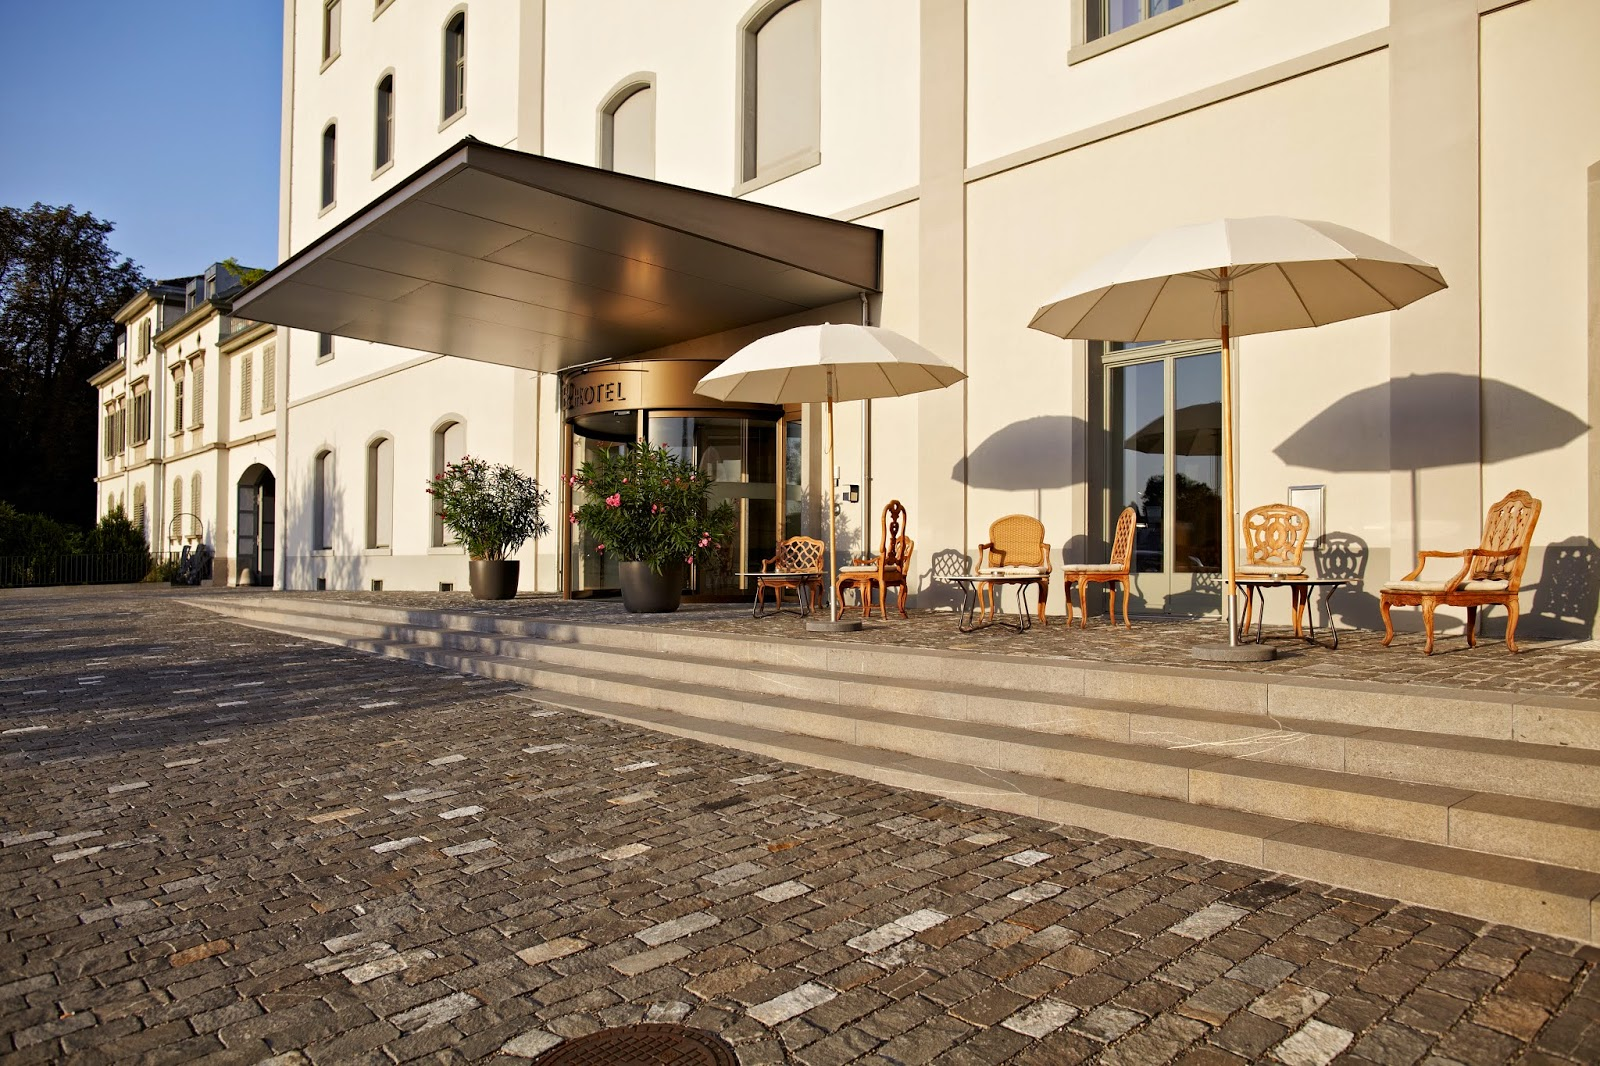 Kee hua chee live b2 is one of zurich 39 s finest yet for Top boutique hotels zurich